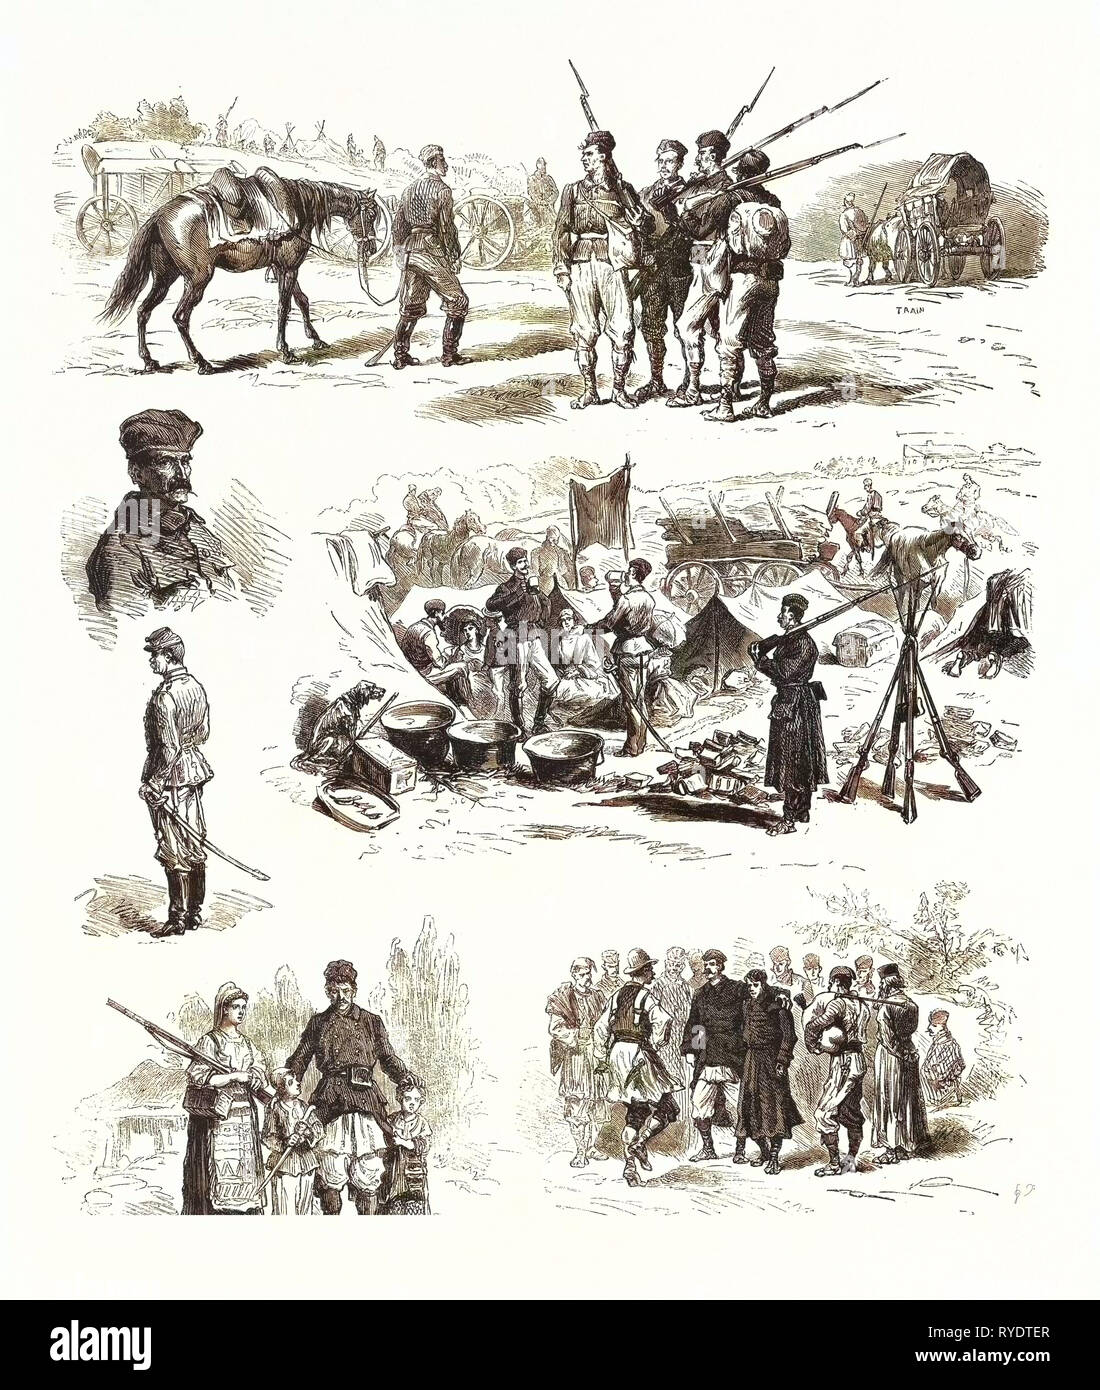 The Turco Servian War: Cavalry and Infantry of the Reserve Officers, the Camp Adieu Soldiers Dancing, Engraving 1876 - Stock Image